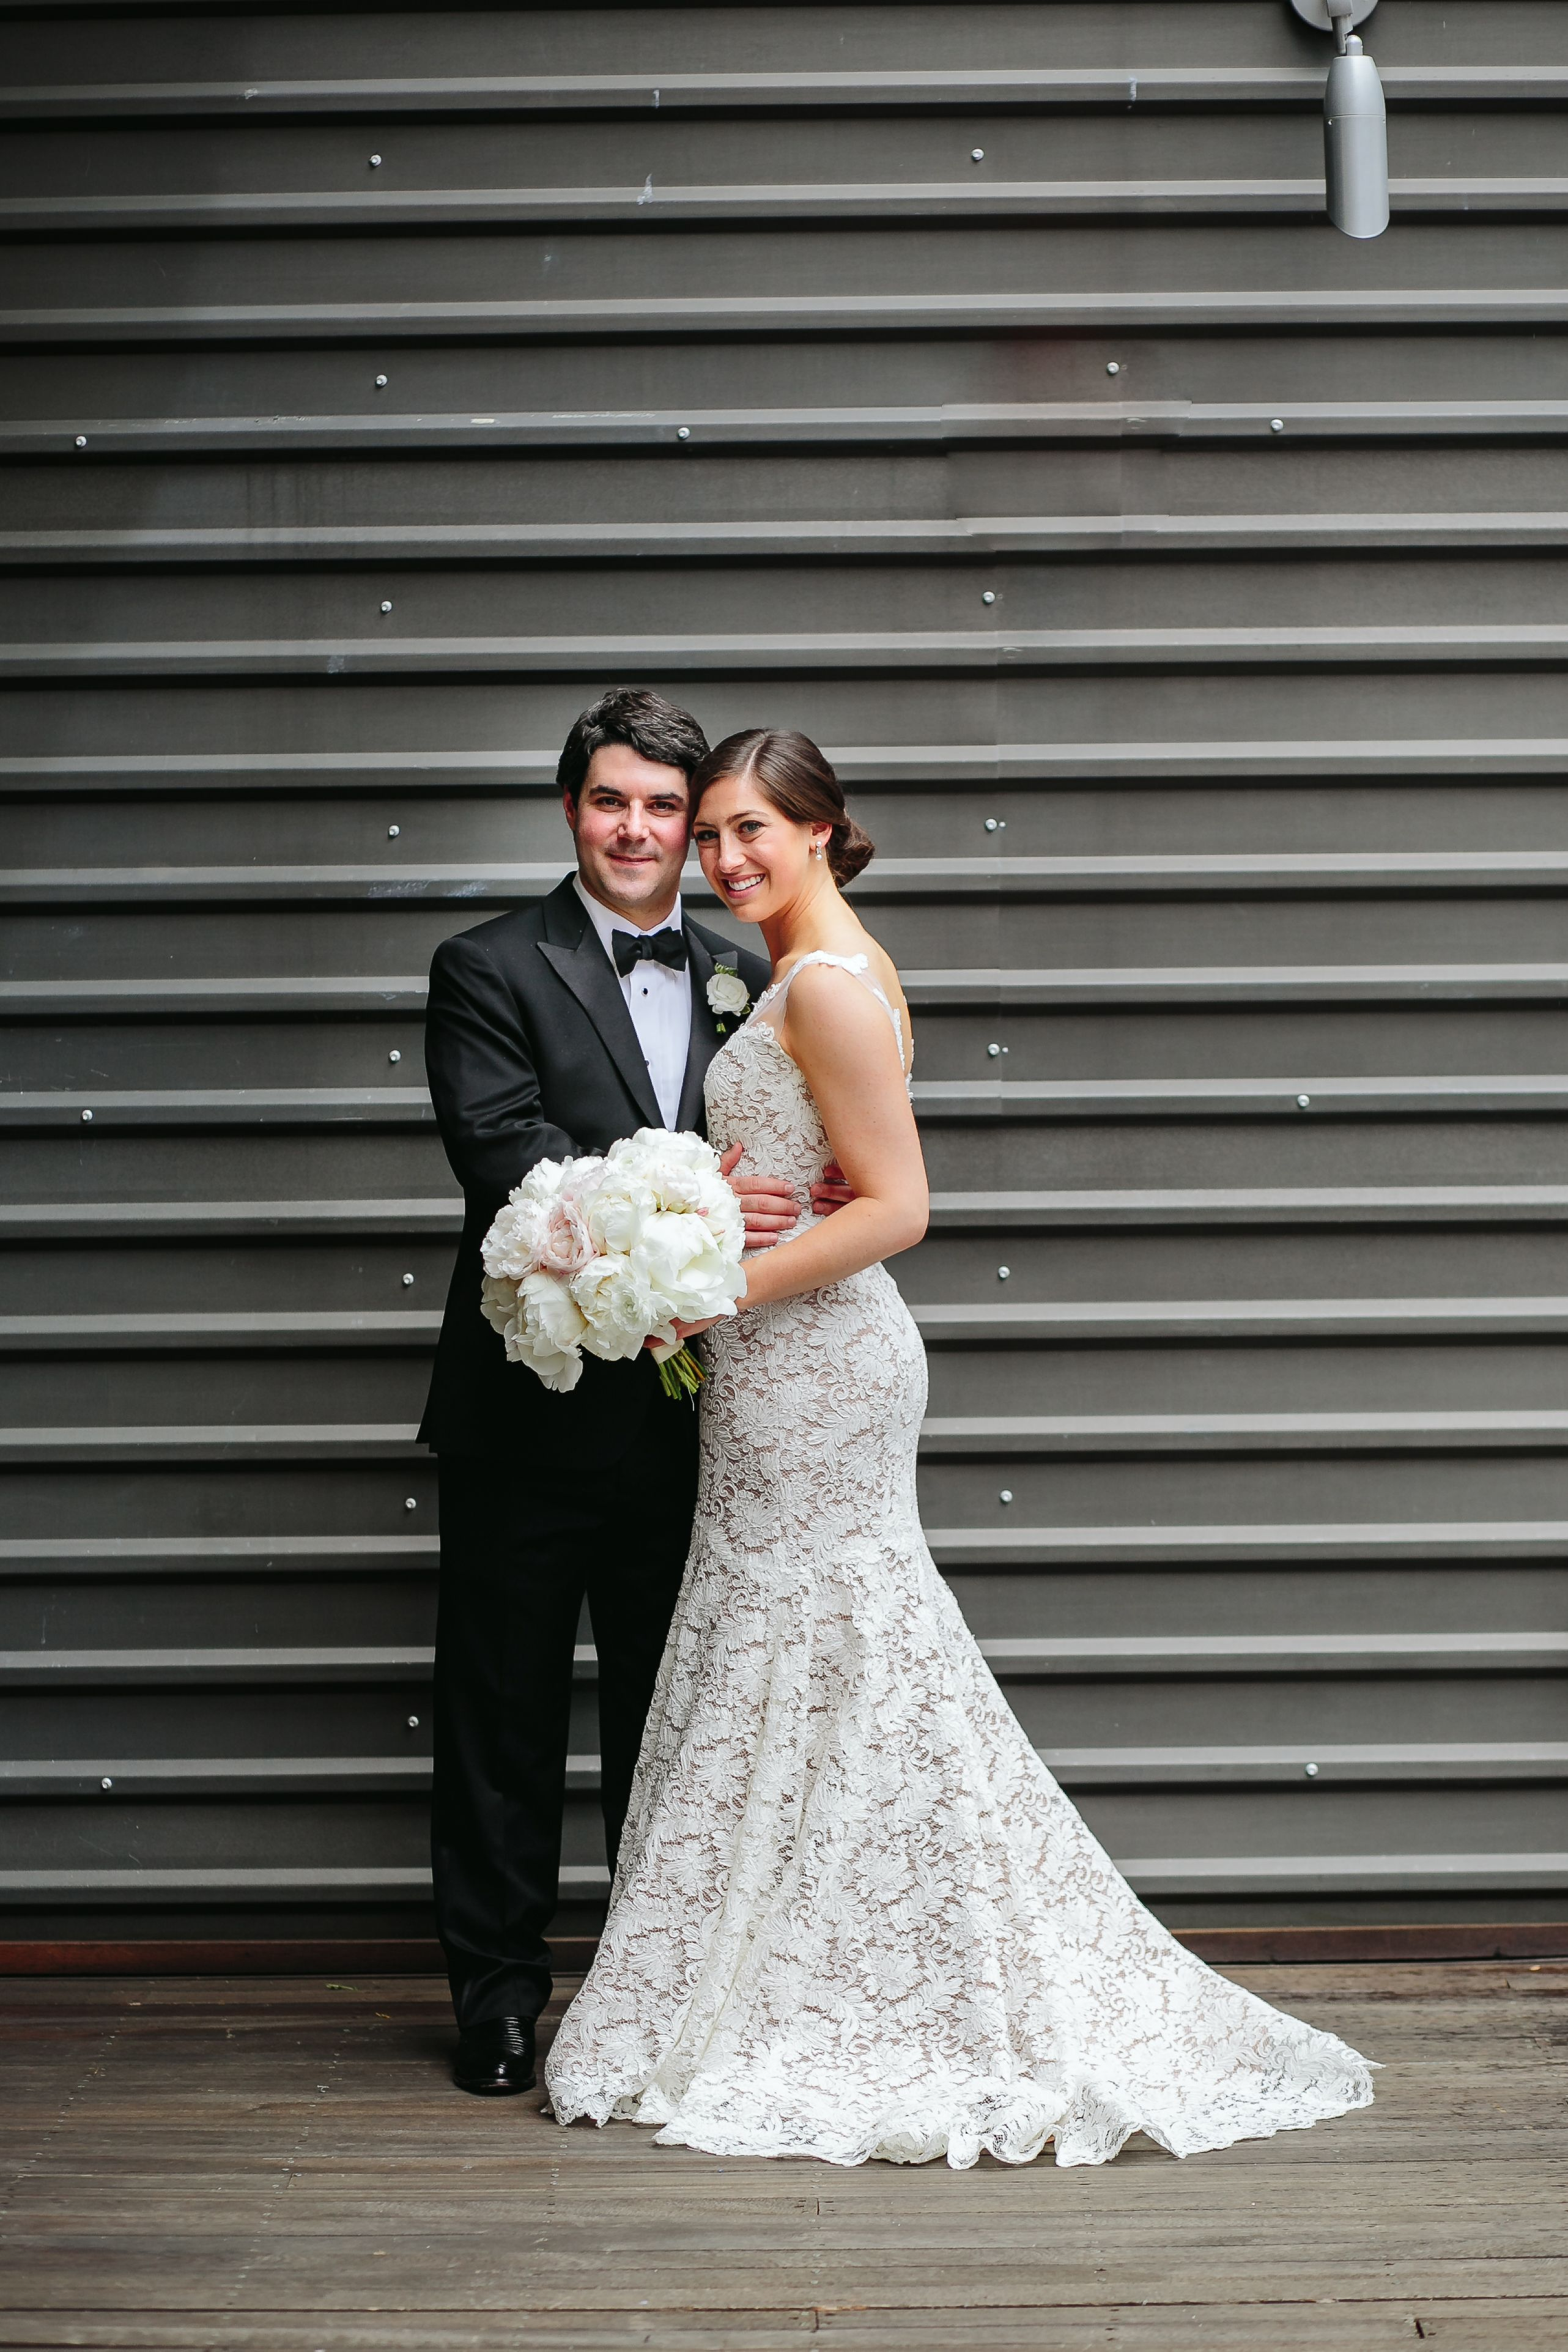 Bride and Groom at Brazos Hall in Austin, Texas Wedding